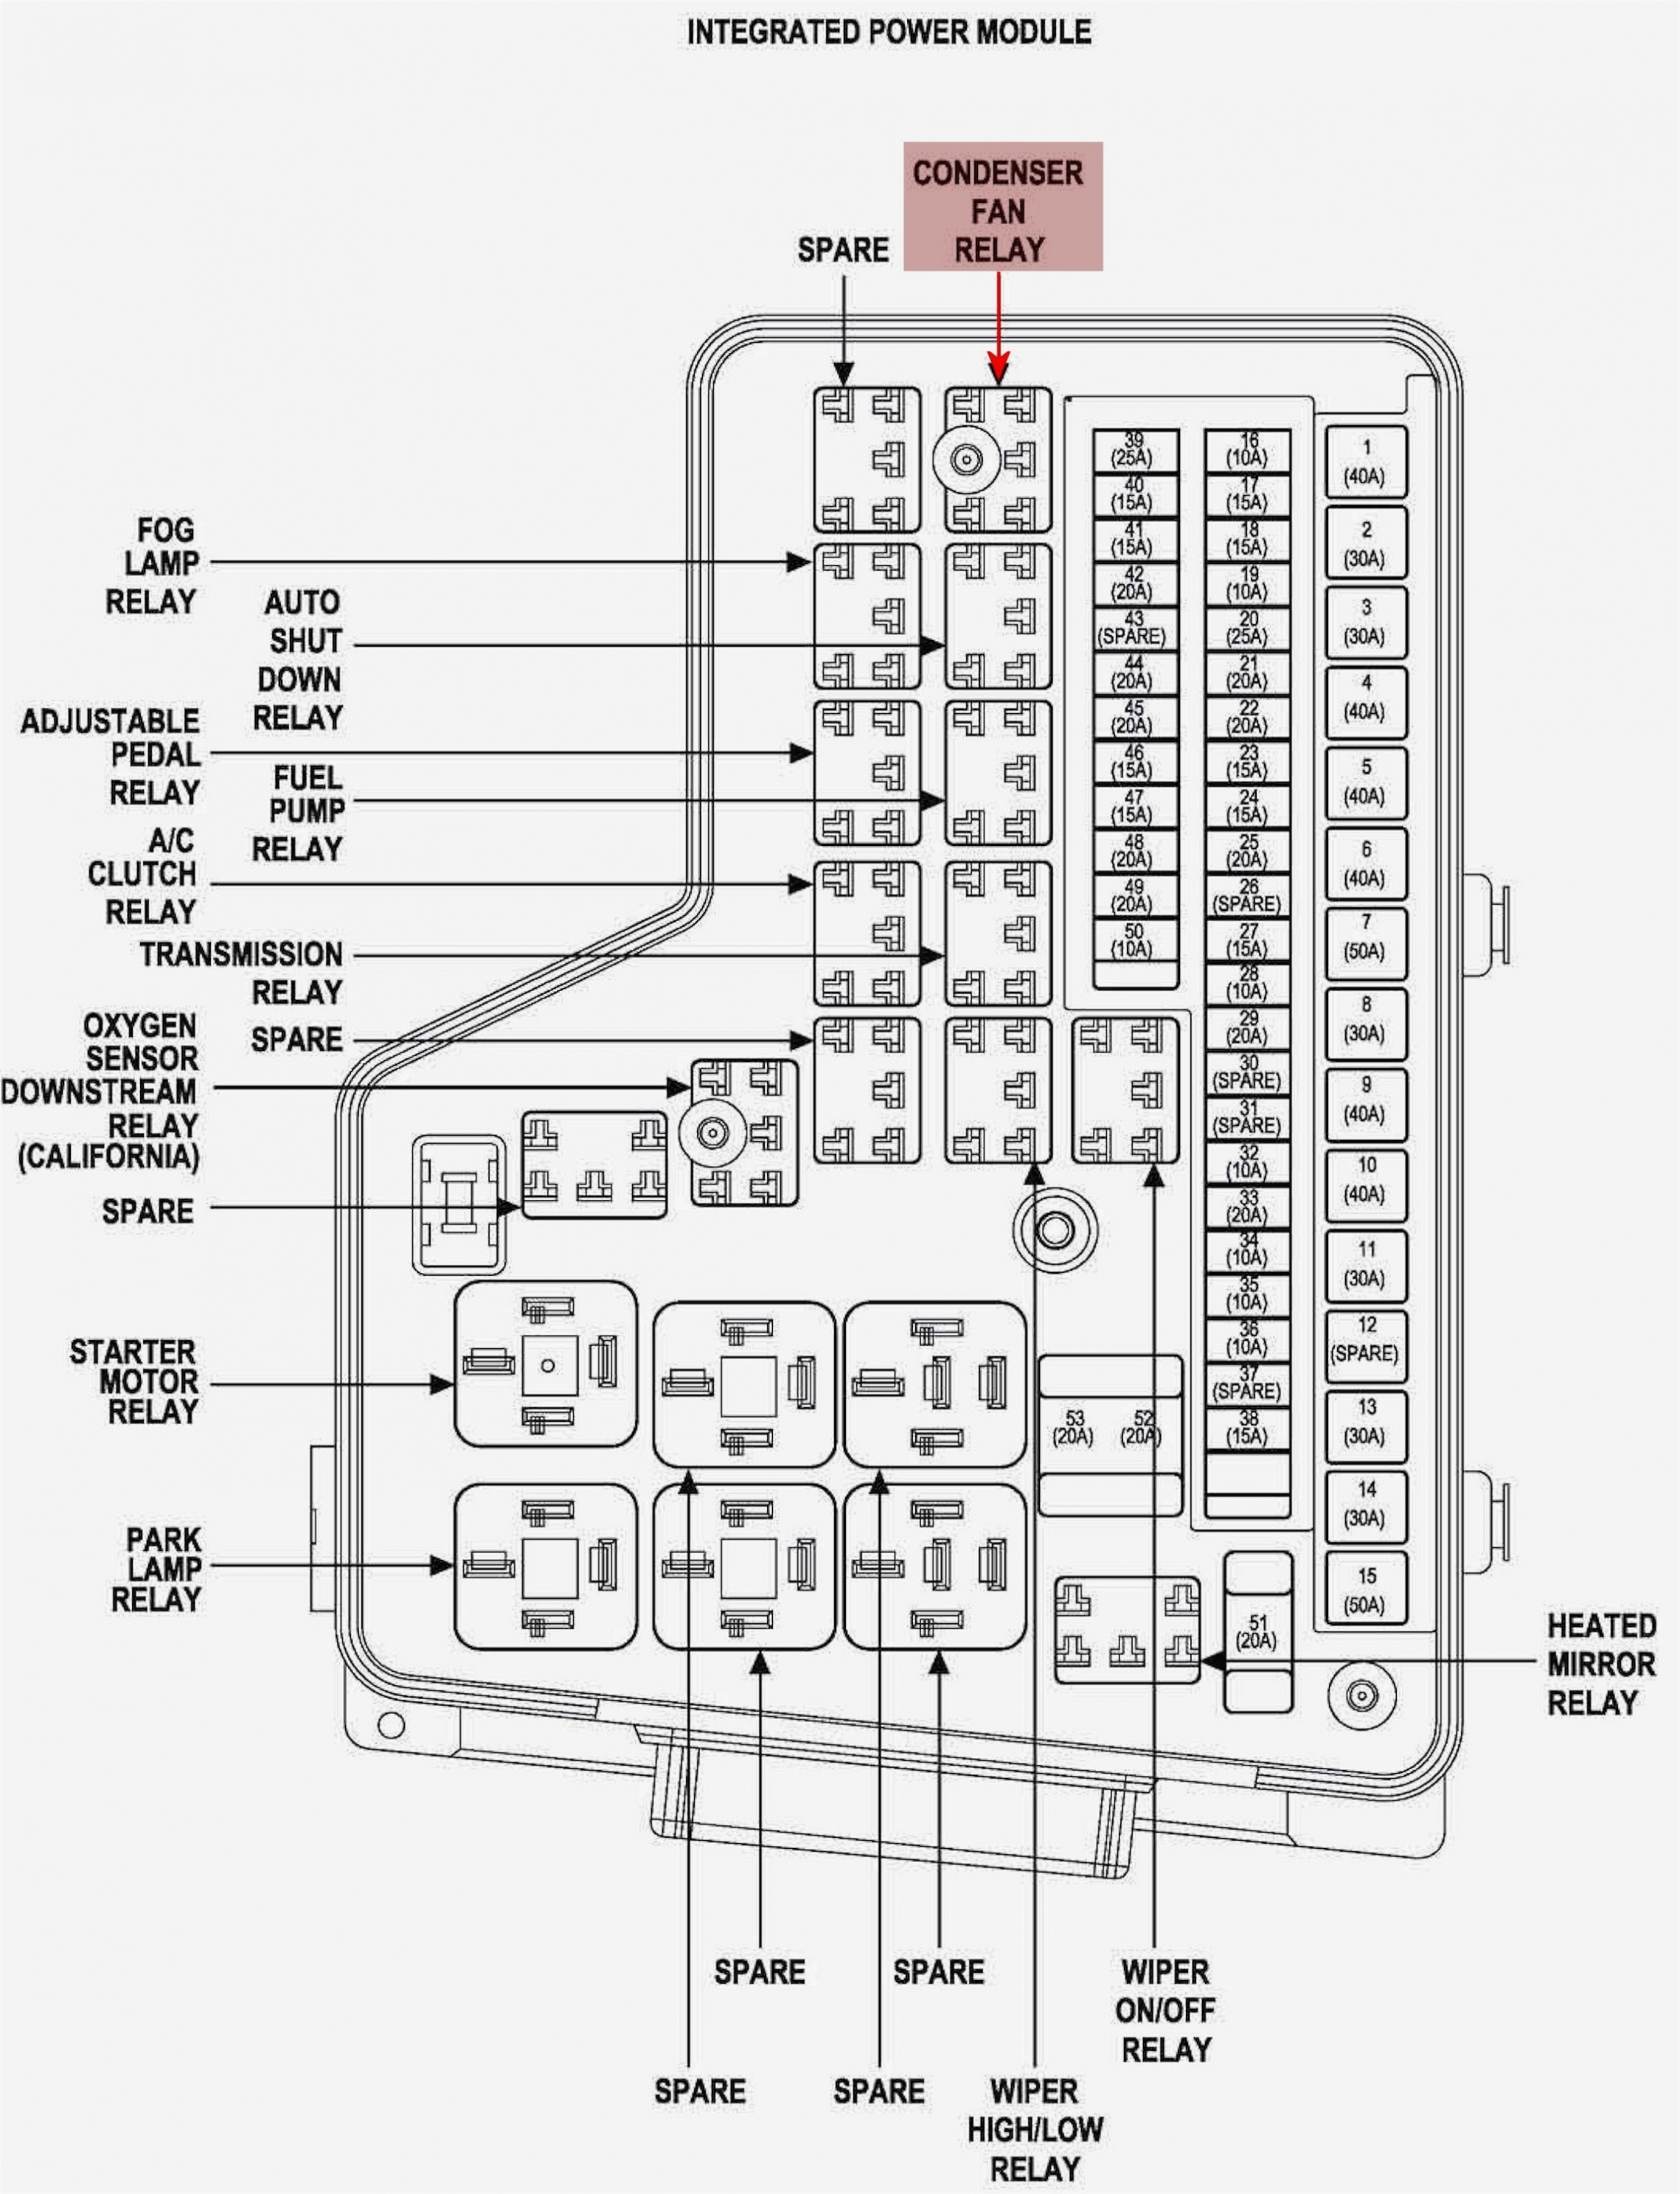 02 Dodge Ram Fuse Box Bmw X3 Fuse Box Diagram Bege Place Wiring Diagram